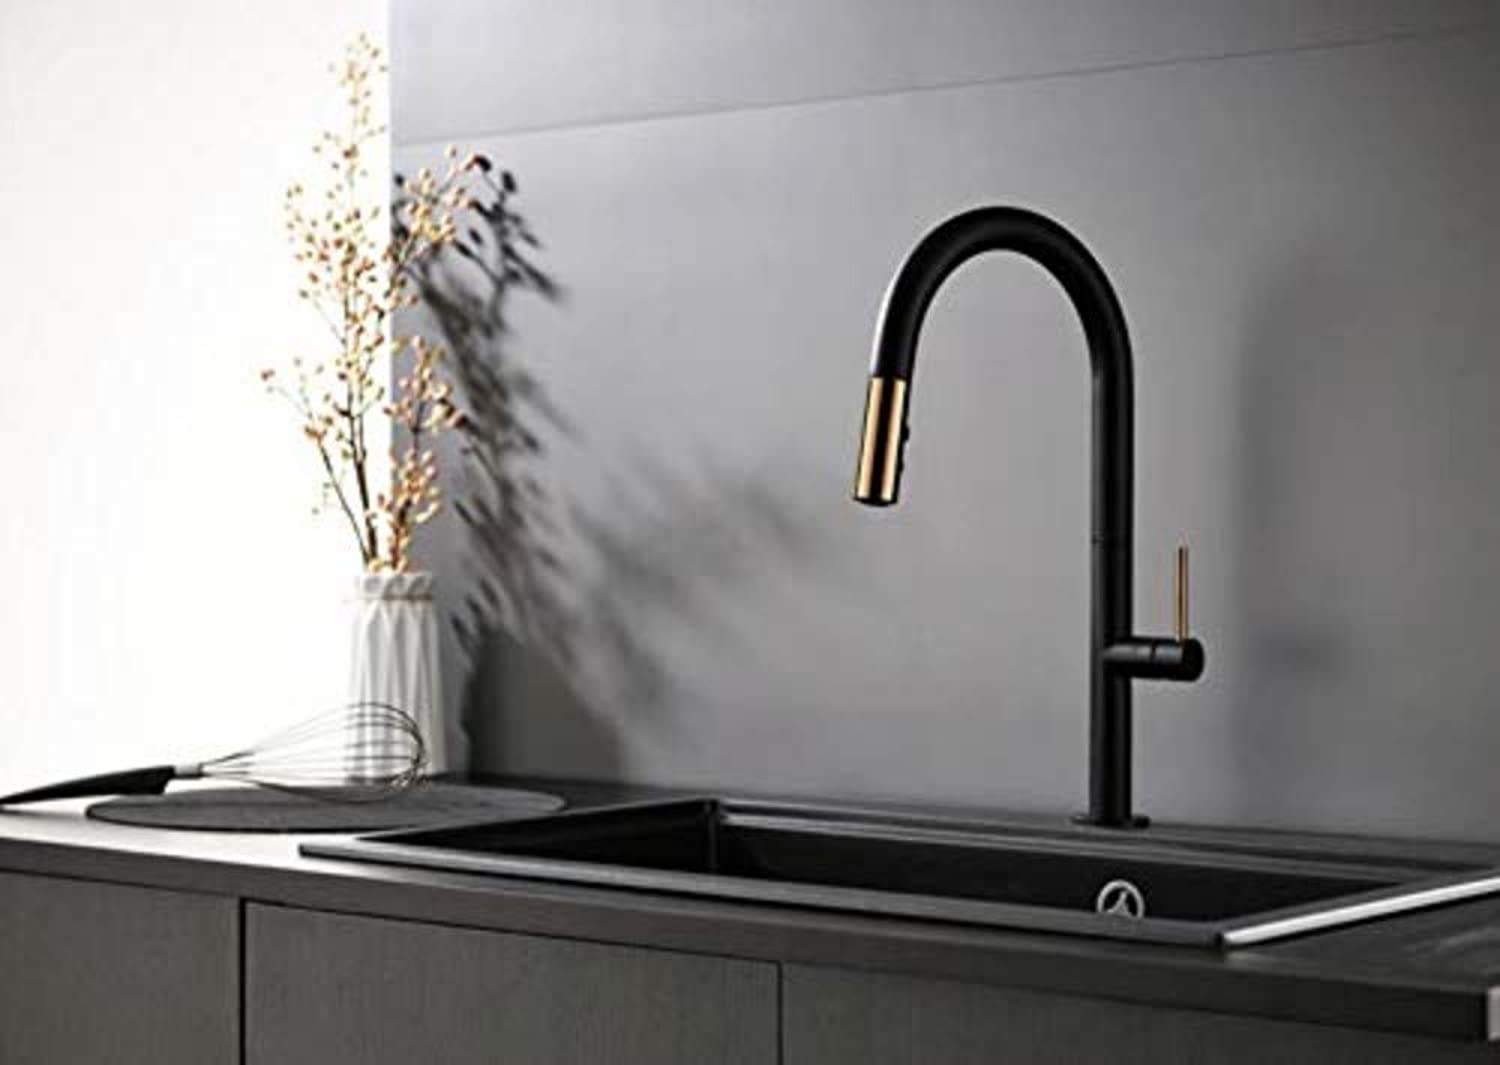 Bathroom Sink Basin Lever Mixer Tap Brass Luxury Kitchen Mixer Sink Faucet Mixer Kitchen Faucets Pull Out Kitchen Tap